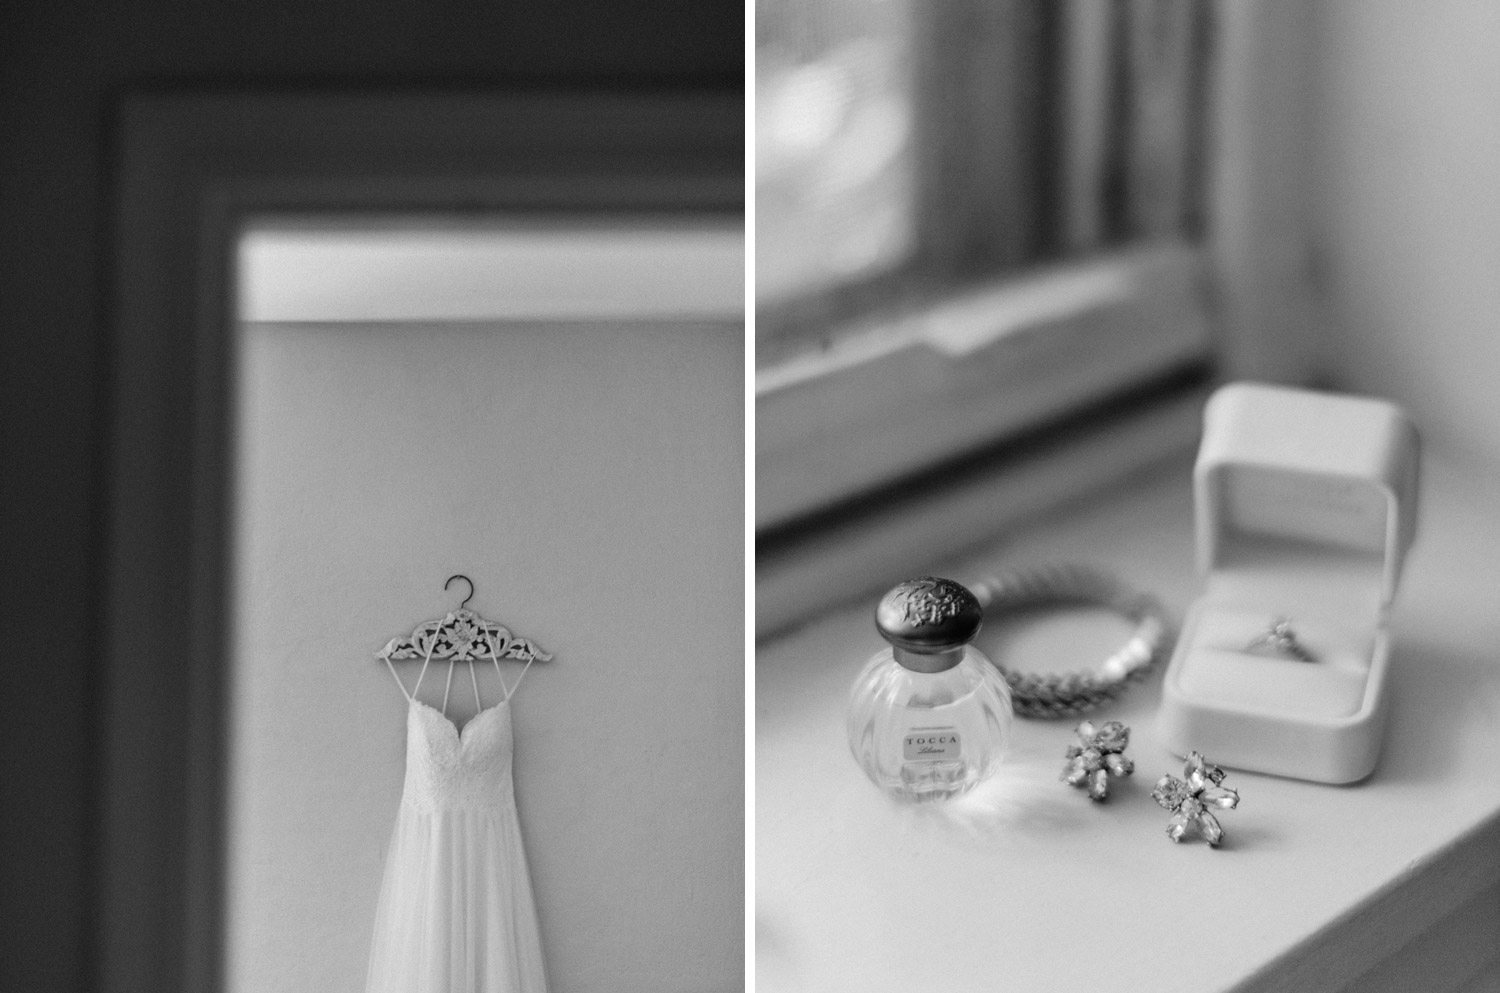 wedding details captured by geneoh photography